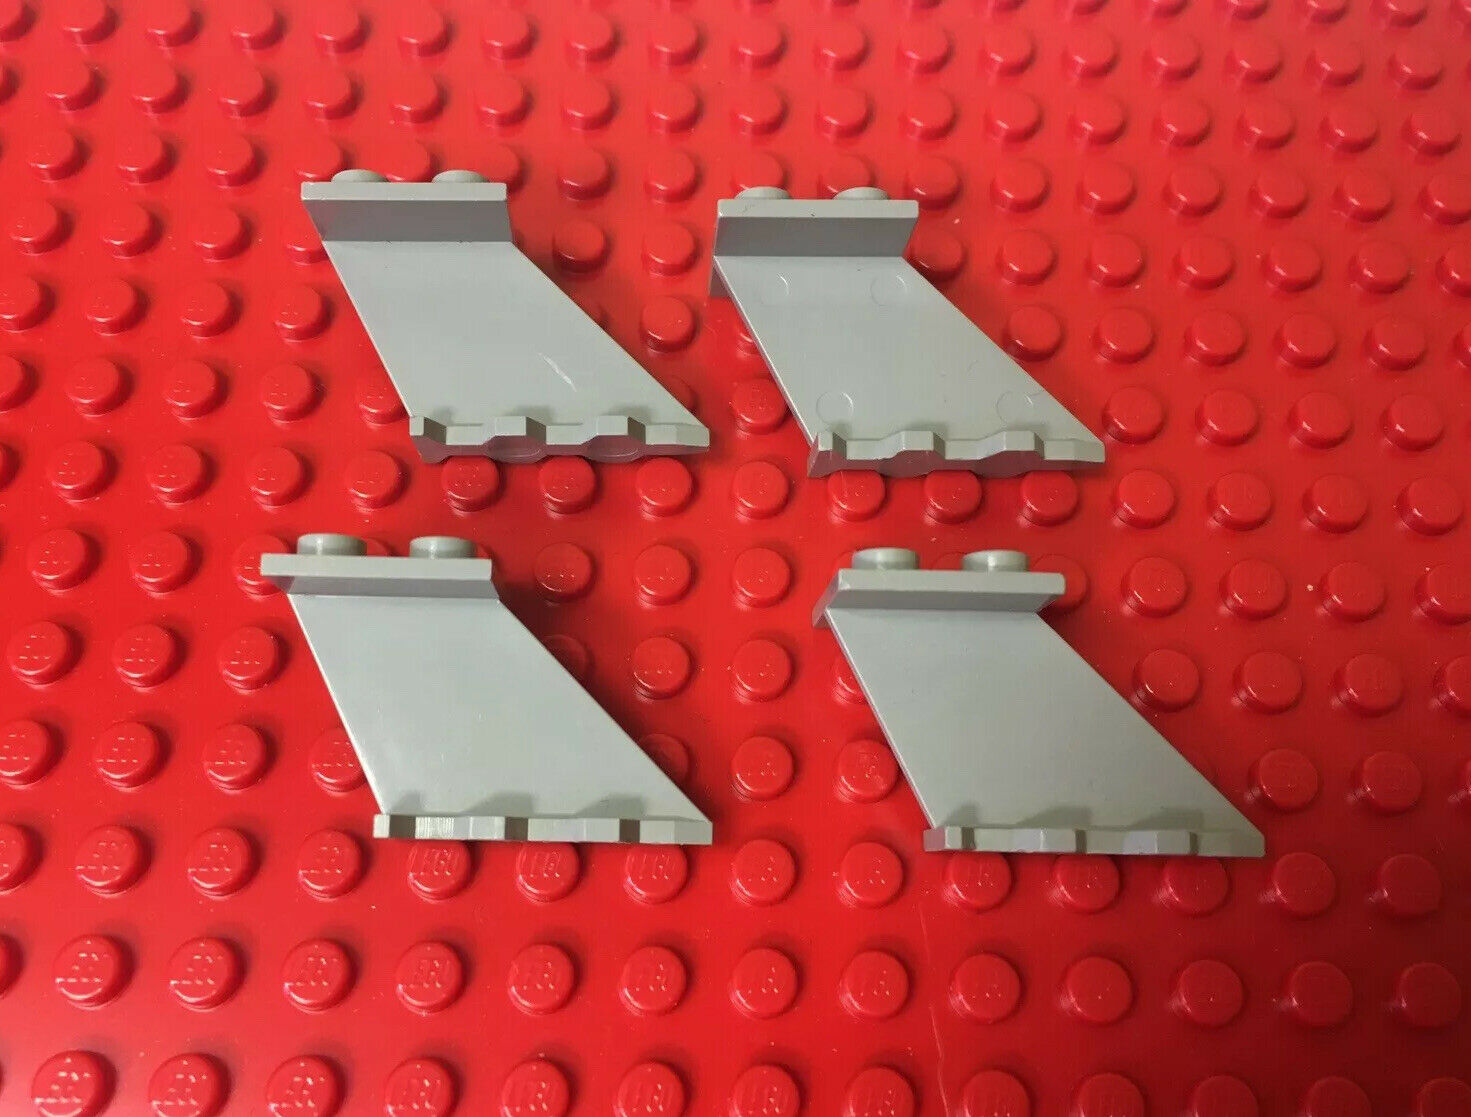 Lego Lot of 25 New White Tail 4 x 1 x 3 Pieces Parts